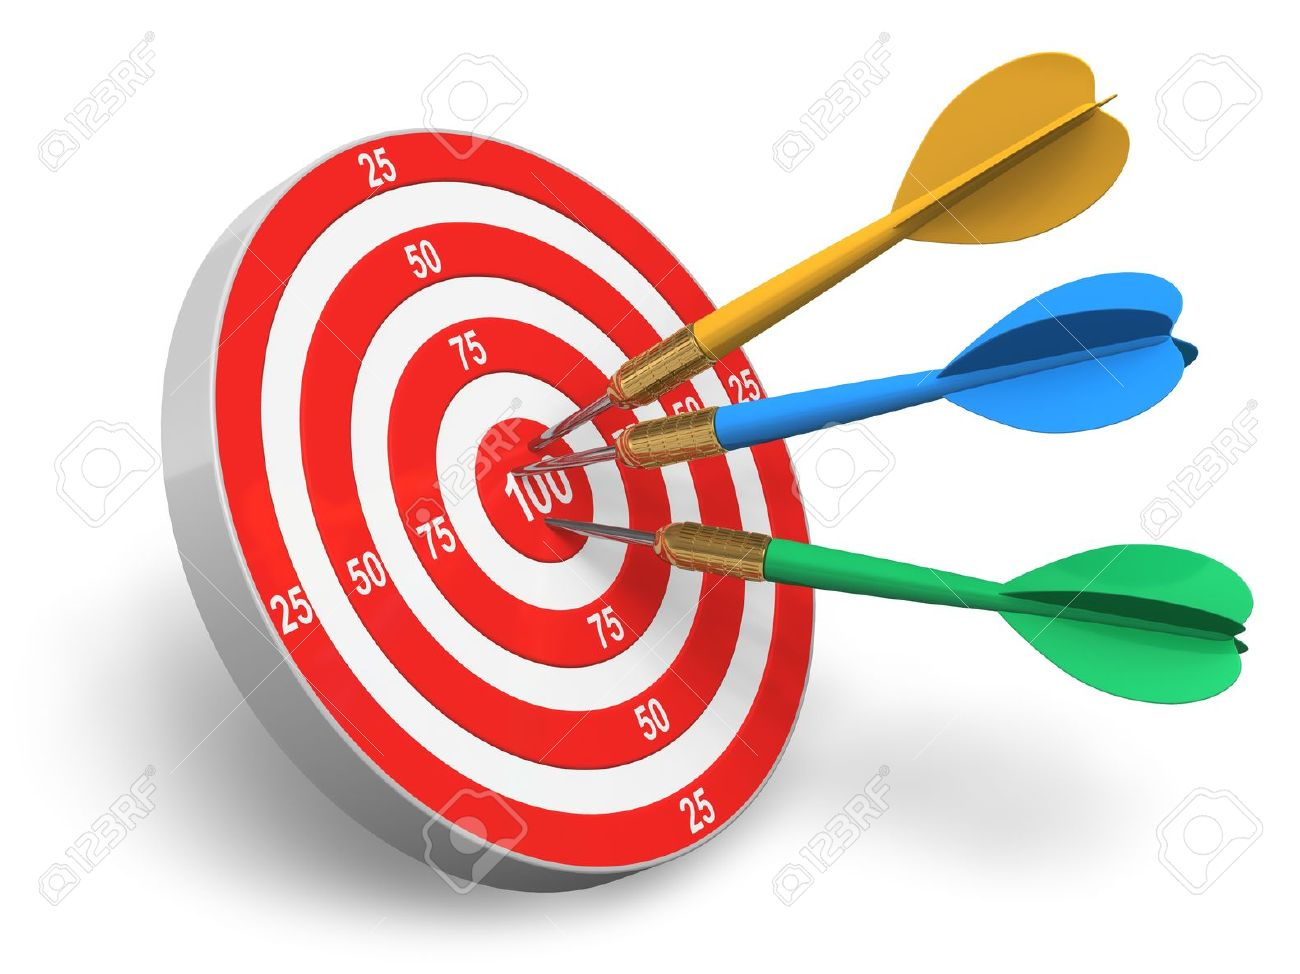 Darts Game Red Circle Target And Color Arrows Isolated On White